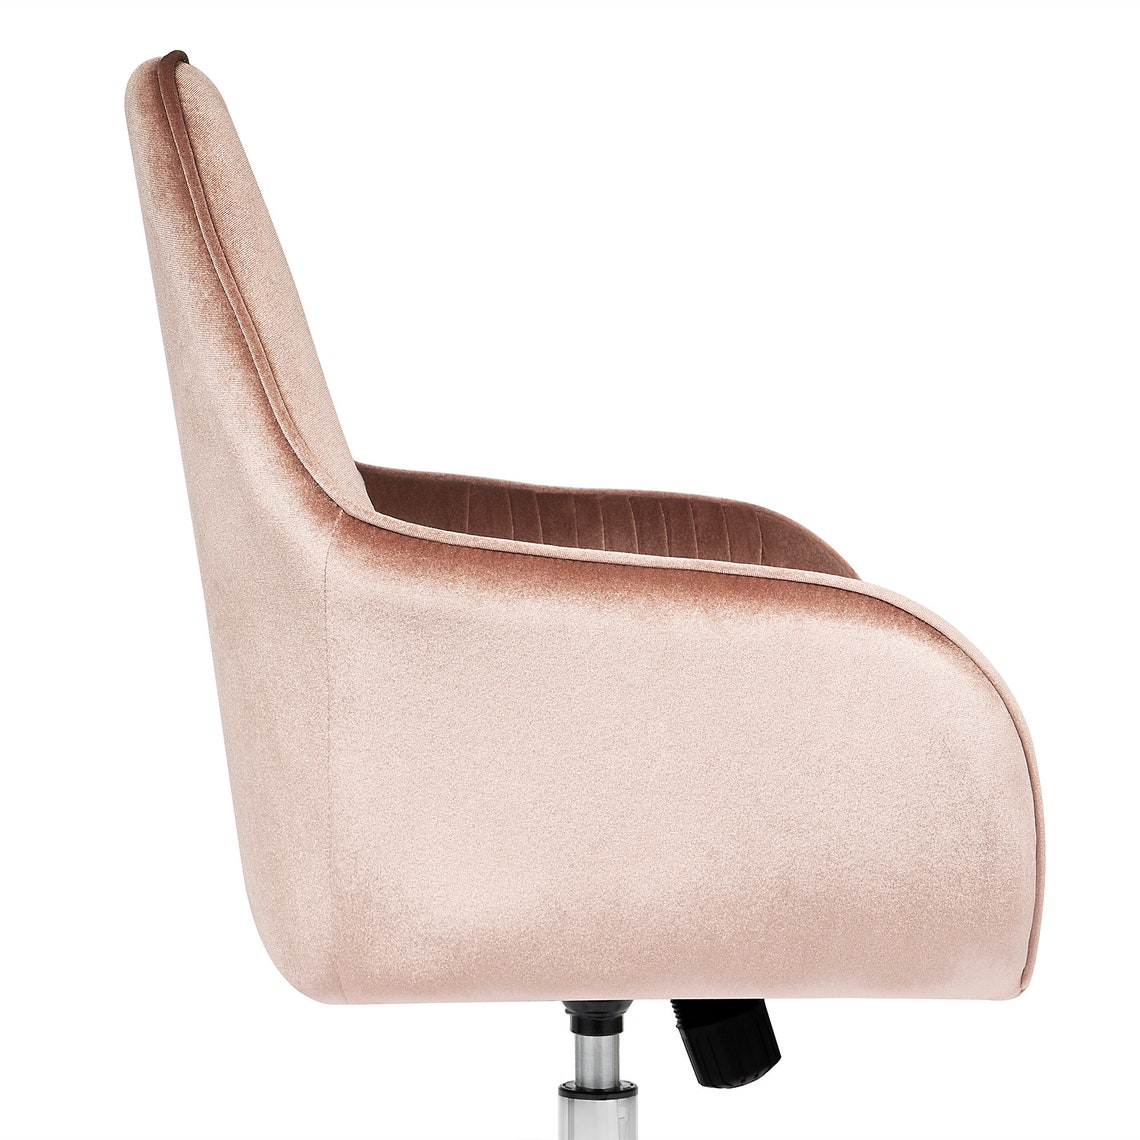 Impressions Vanity Kelly Swivel Vanity Chair | Vanity Seat | Ottoman | Chair | Vanity | NEW ITEM! | Perfect Gift | Gift for Her